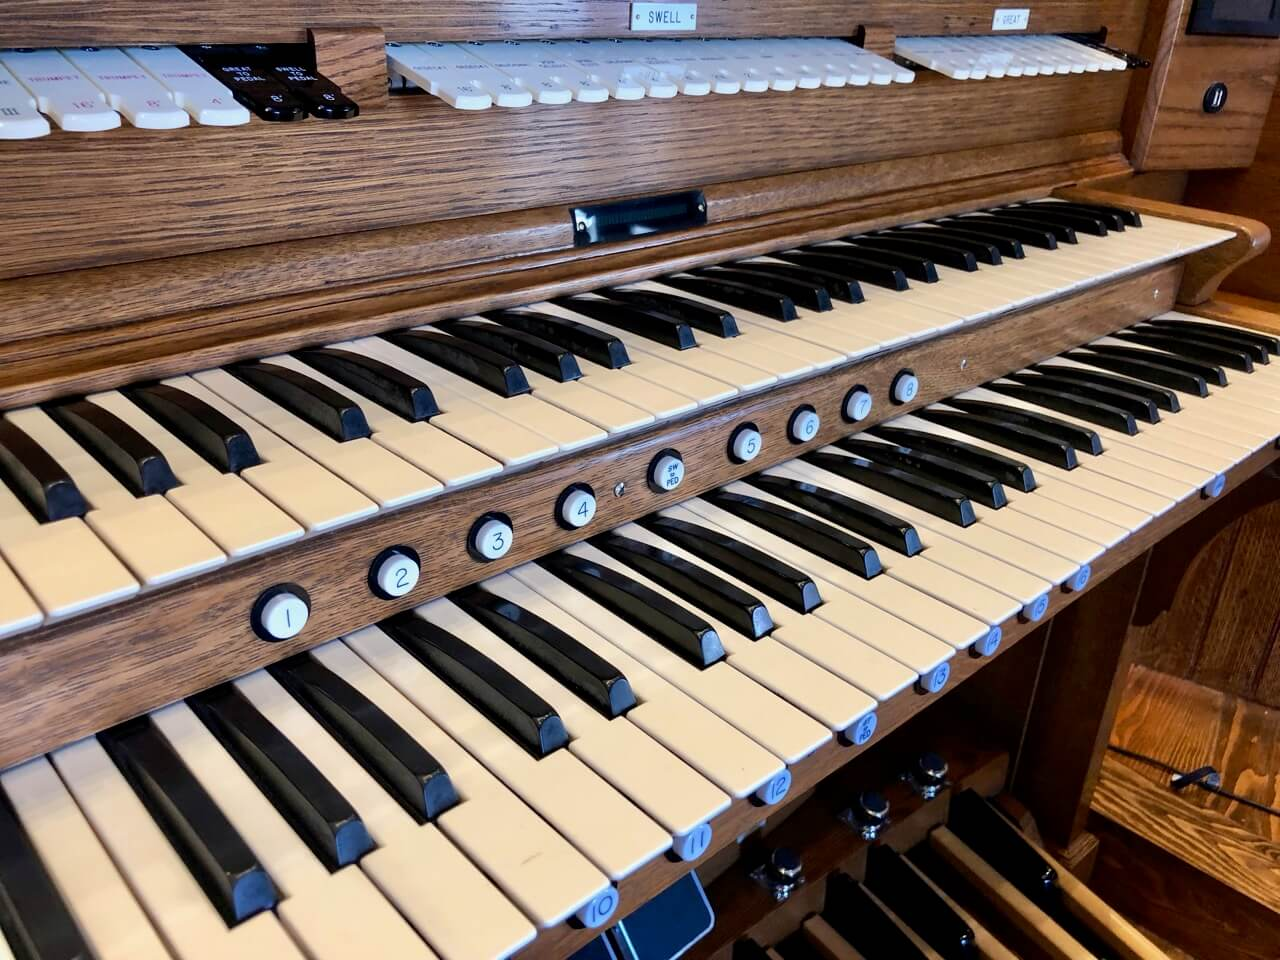 Two-tiered keys of an organ